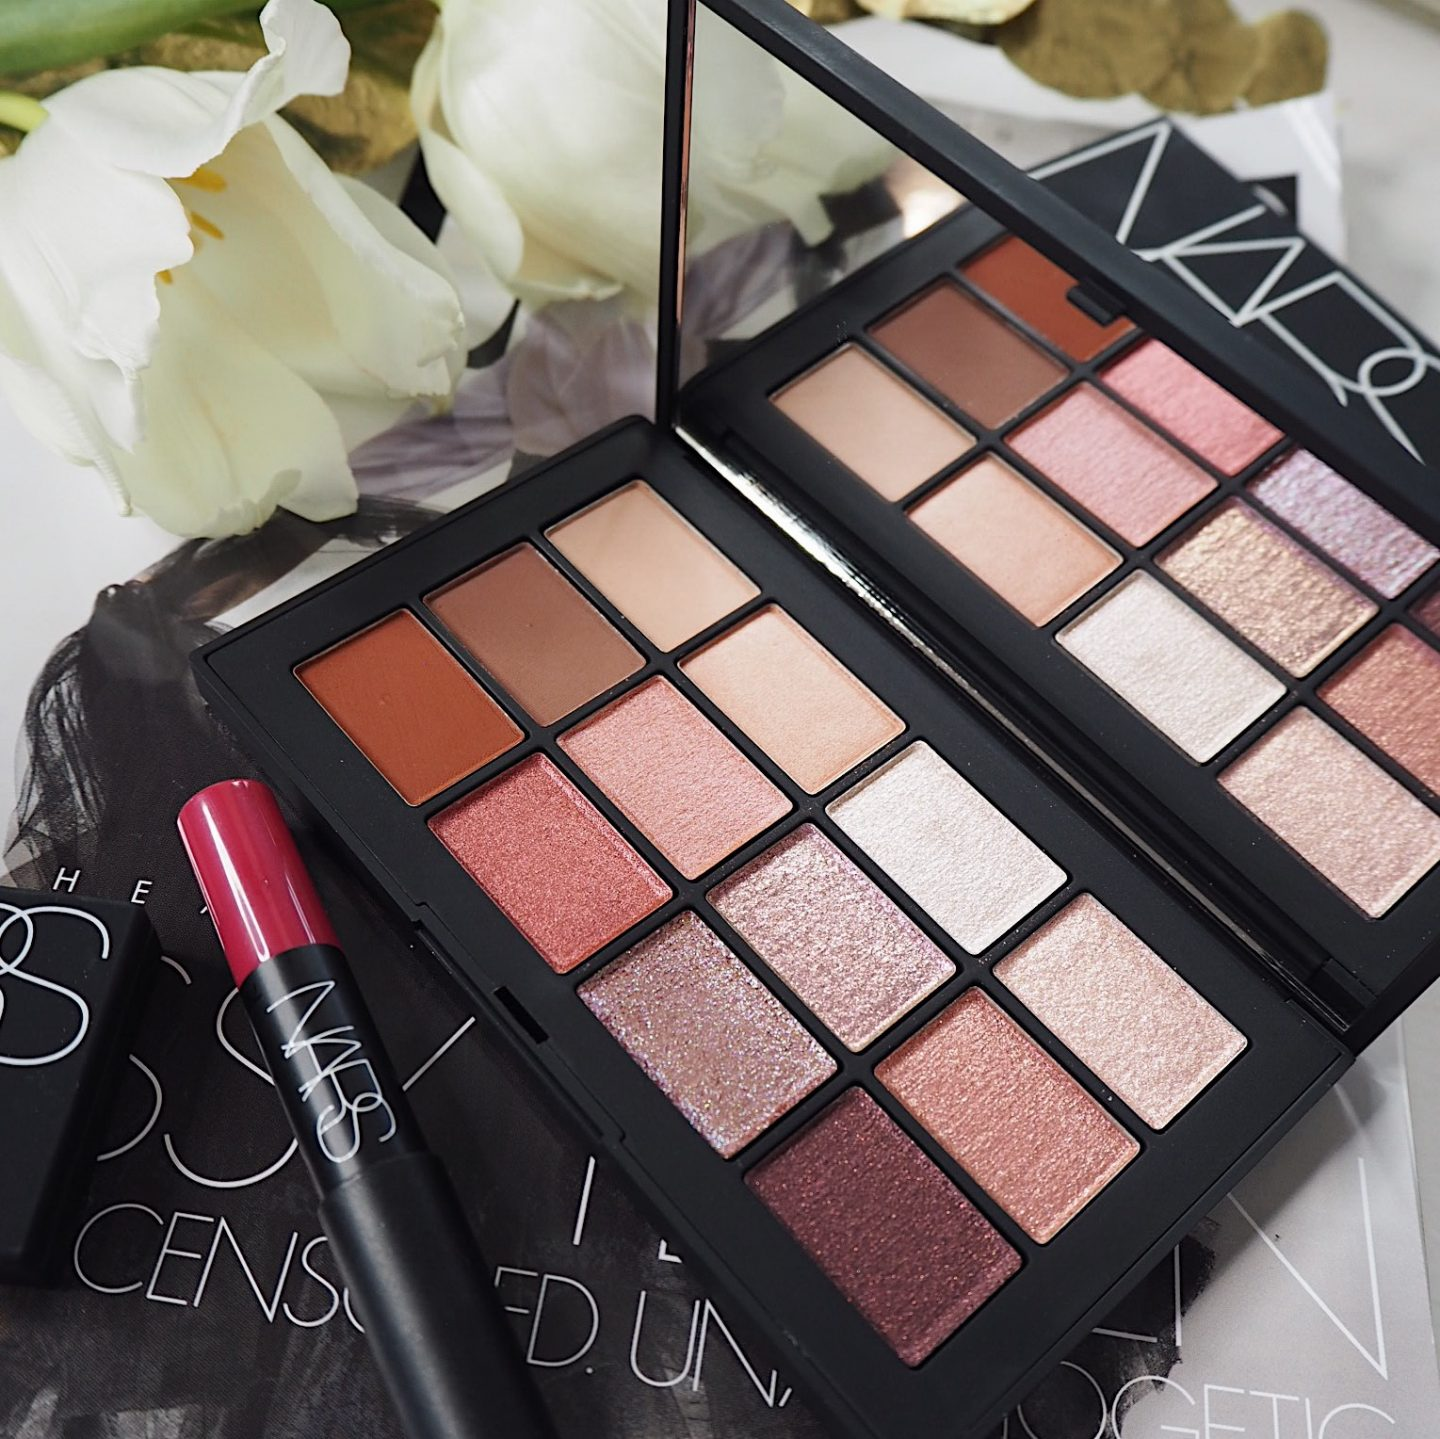 Ignited Eyeshadow Palette From Nars